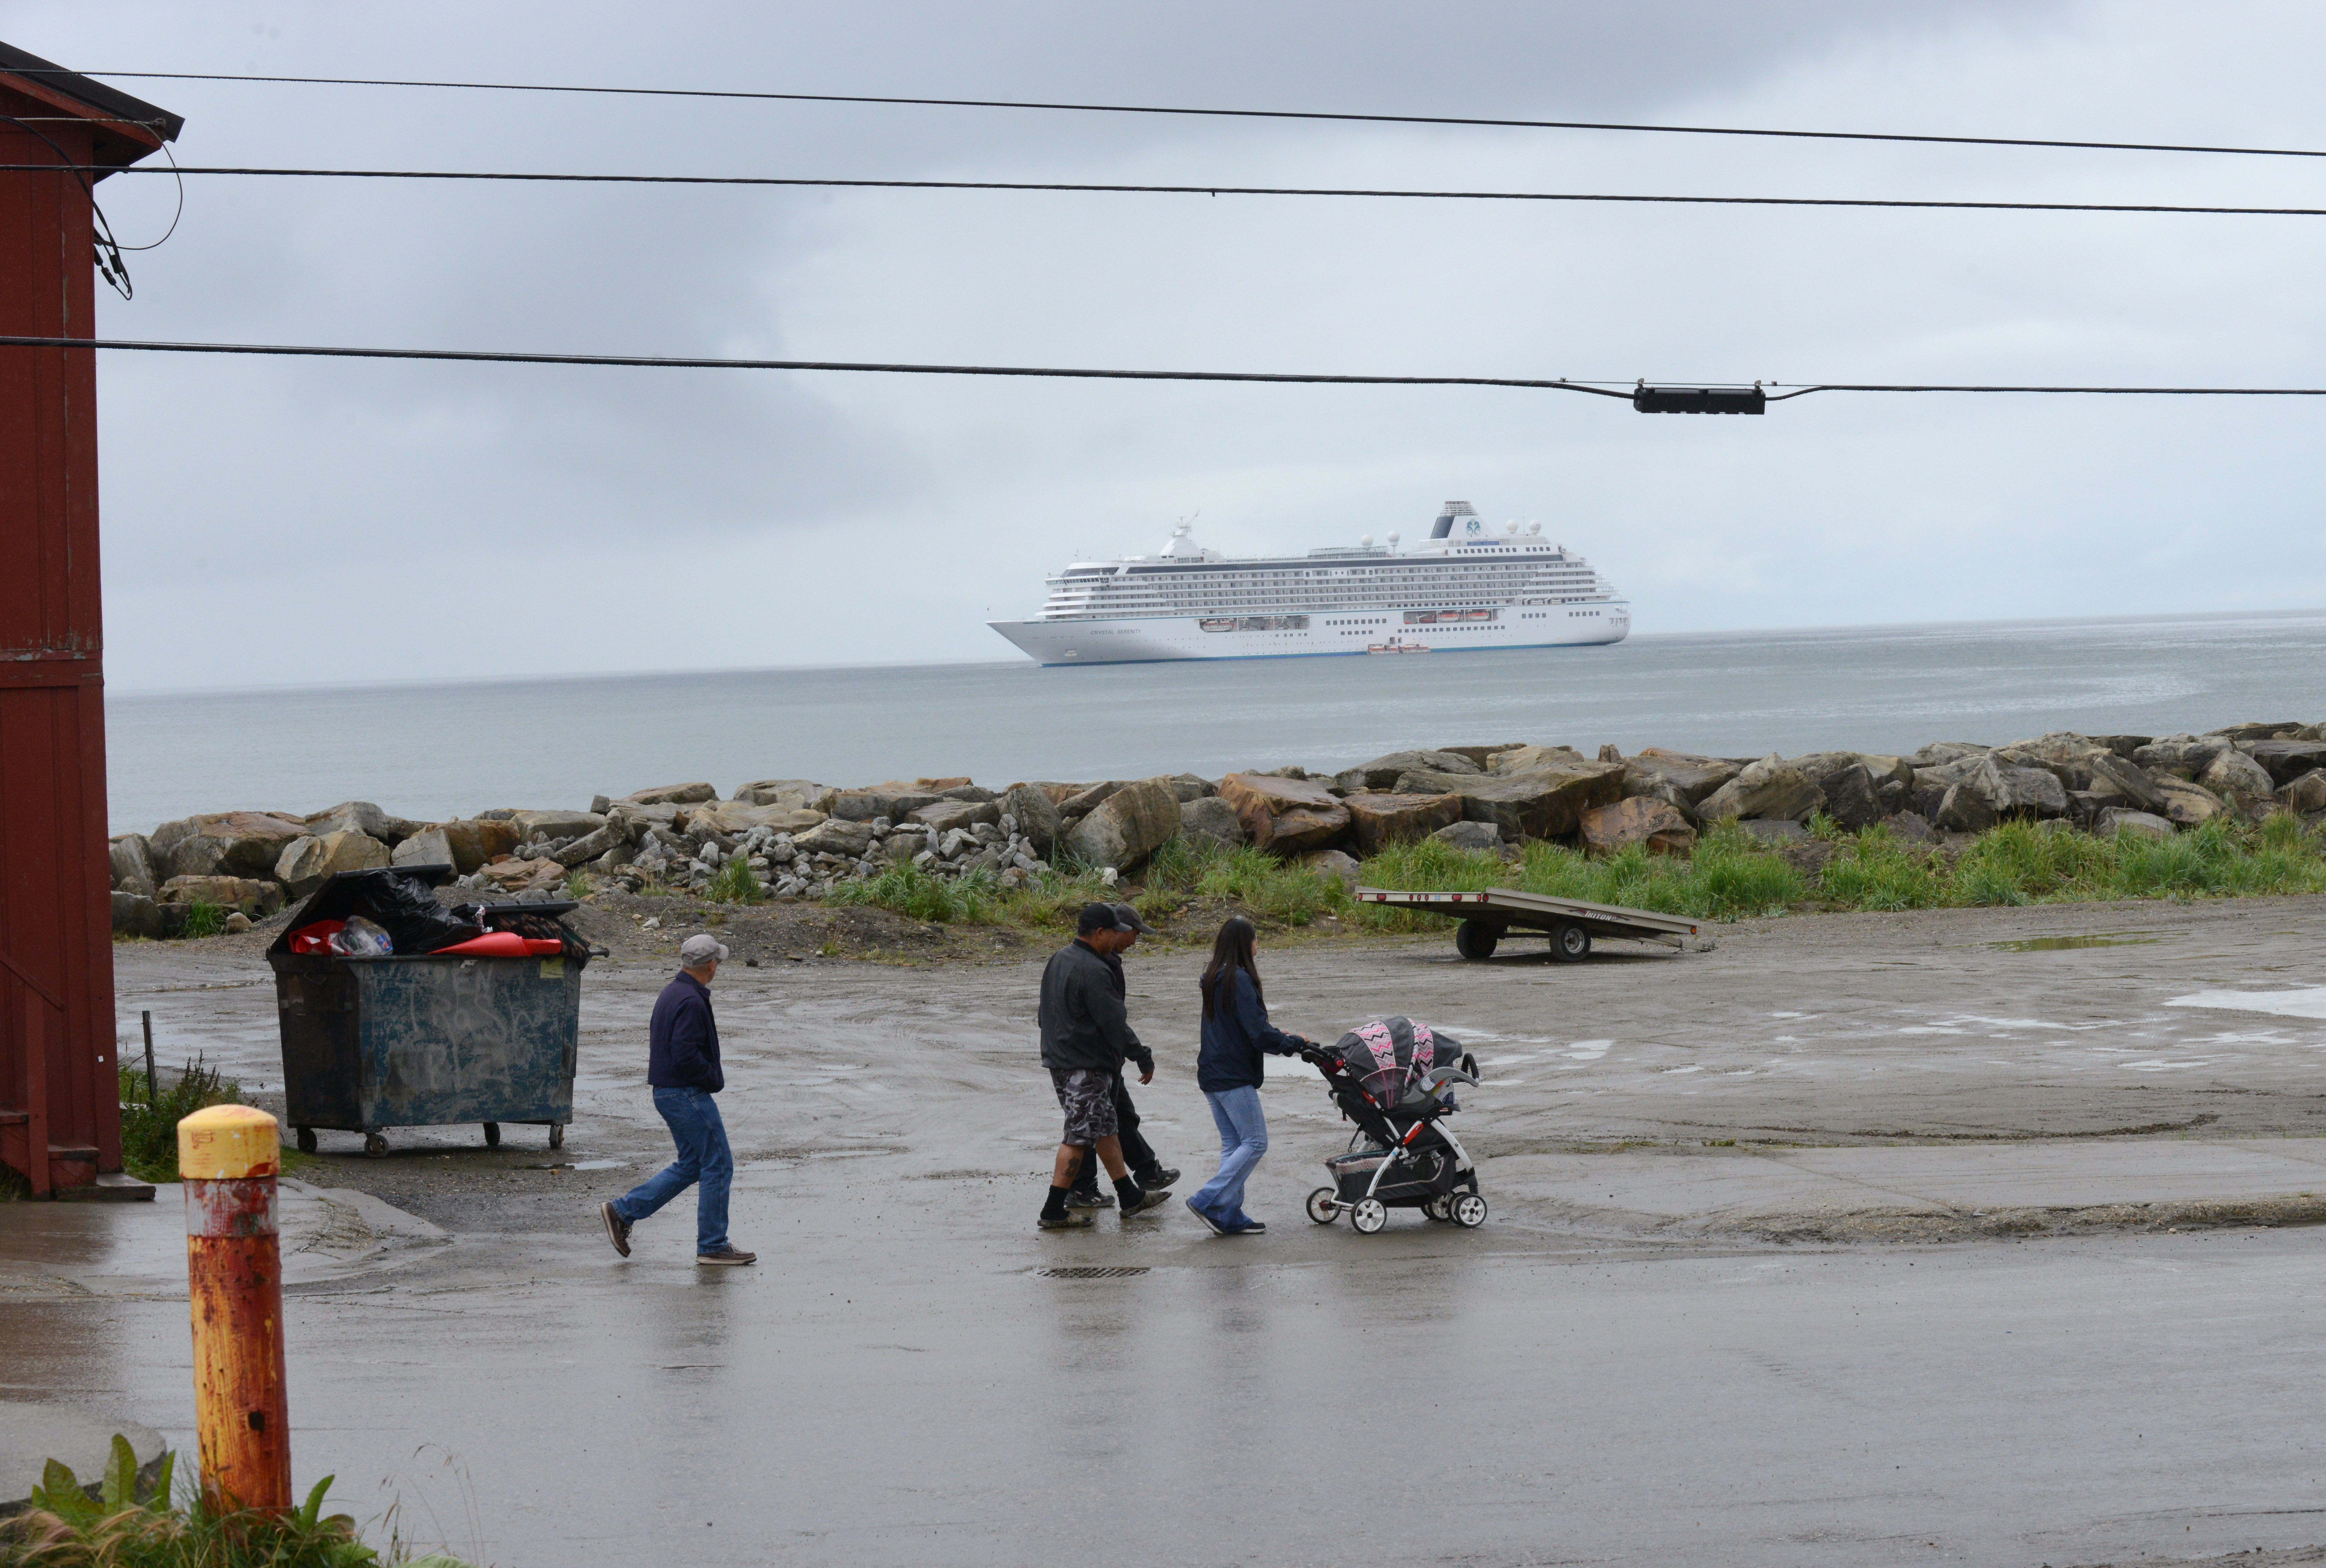 The Crystal Serenity cruise ship stops in Nome, Alaska on Sunday, August 21, 2016. The cruise ship is on its way across the Northwest Passage, the largest passenger ship to attempt the crossing. (Bob Hallinen / Alaska Dispatch News)